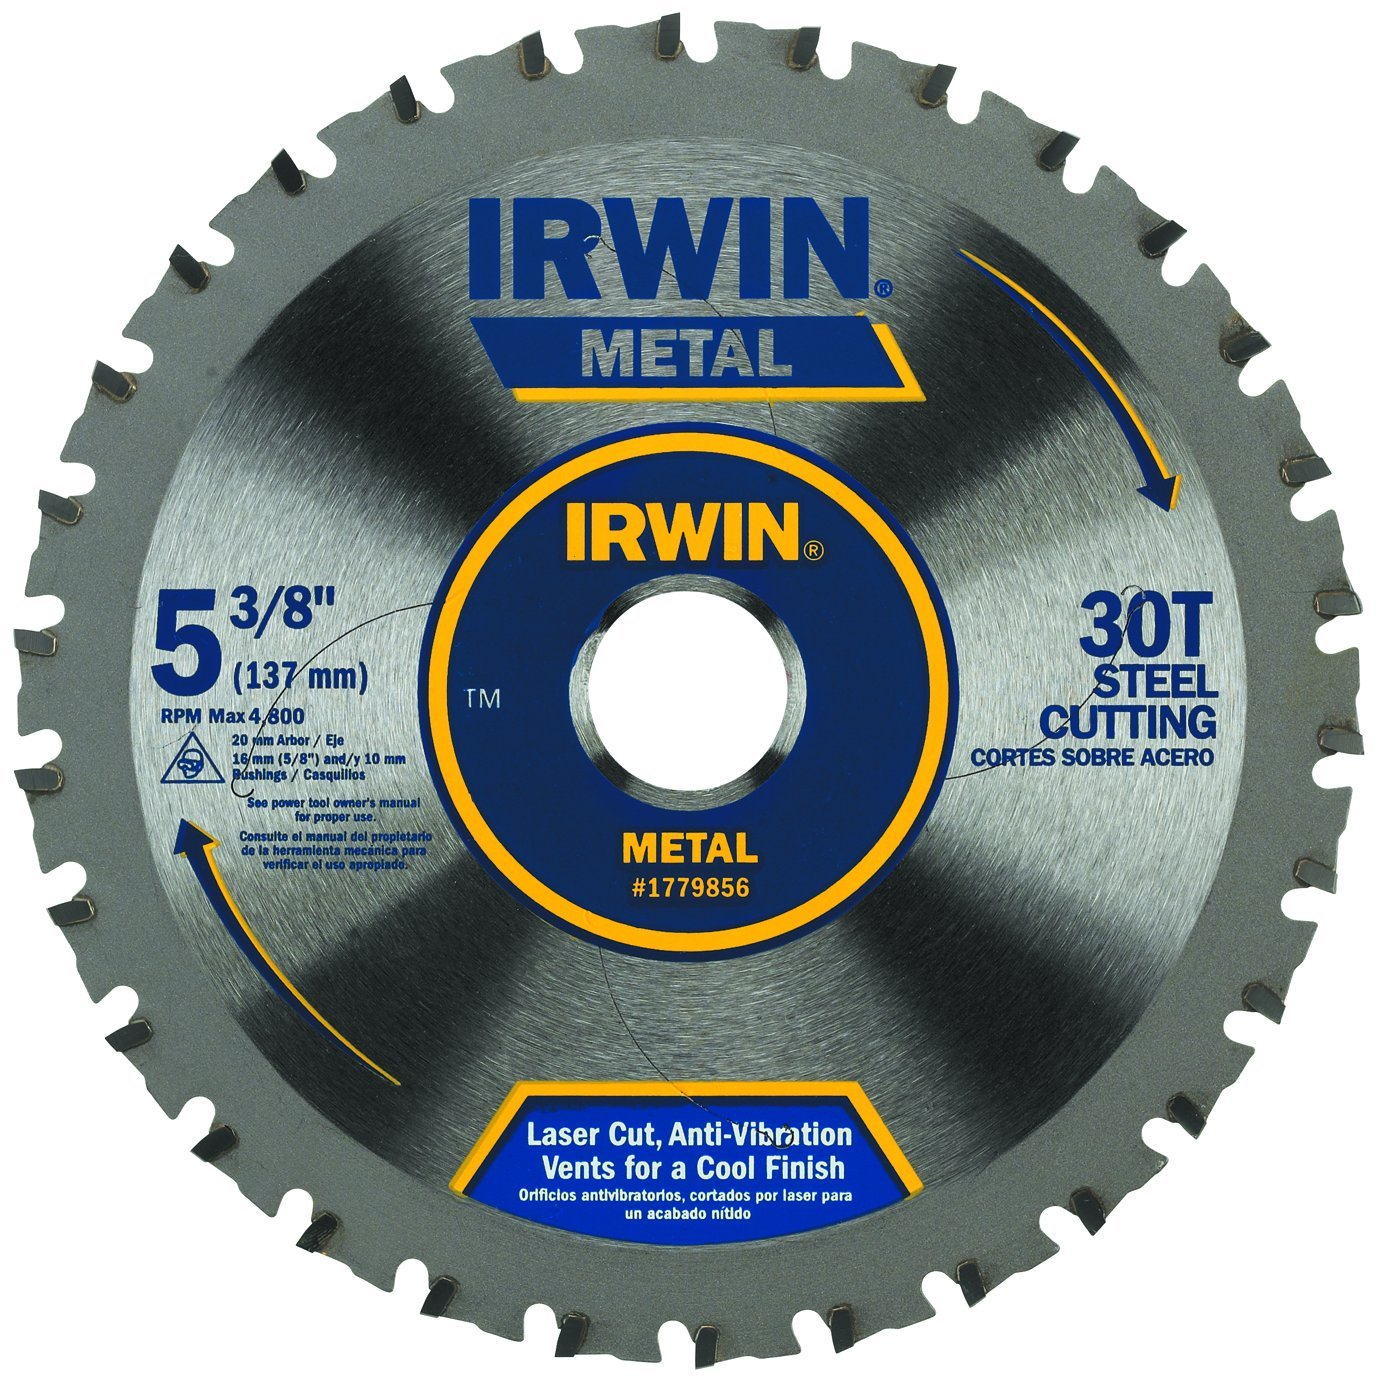 Irwin tools metal cutting circular saw blade 5 38 inch 30t irwin tools metal cutting circular saw blade 5 38 inch 30t 1779856 amazon keyboard keysfo Image collections